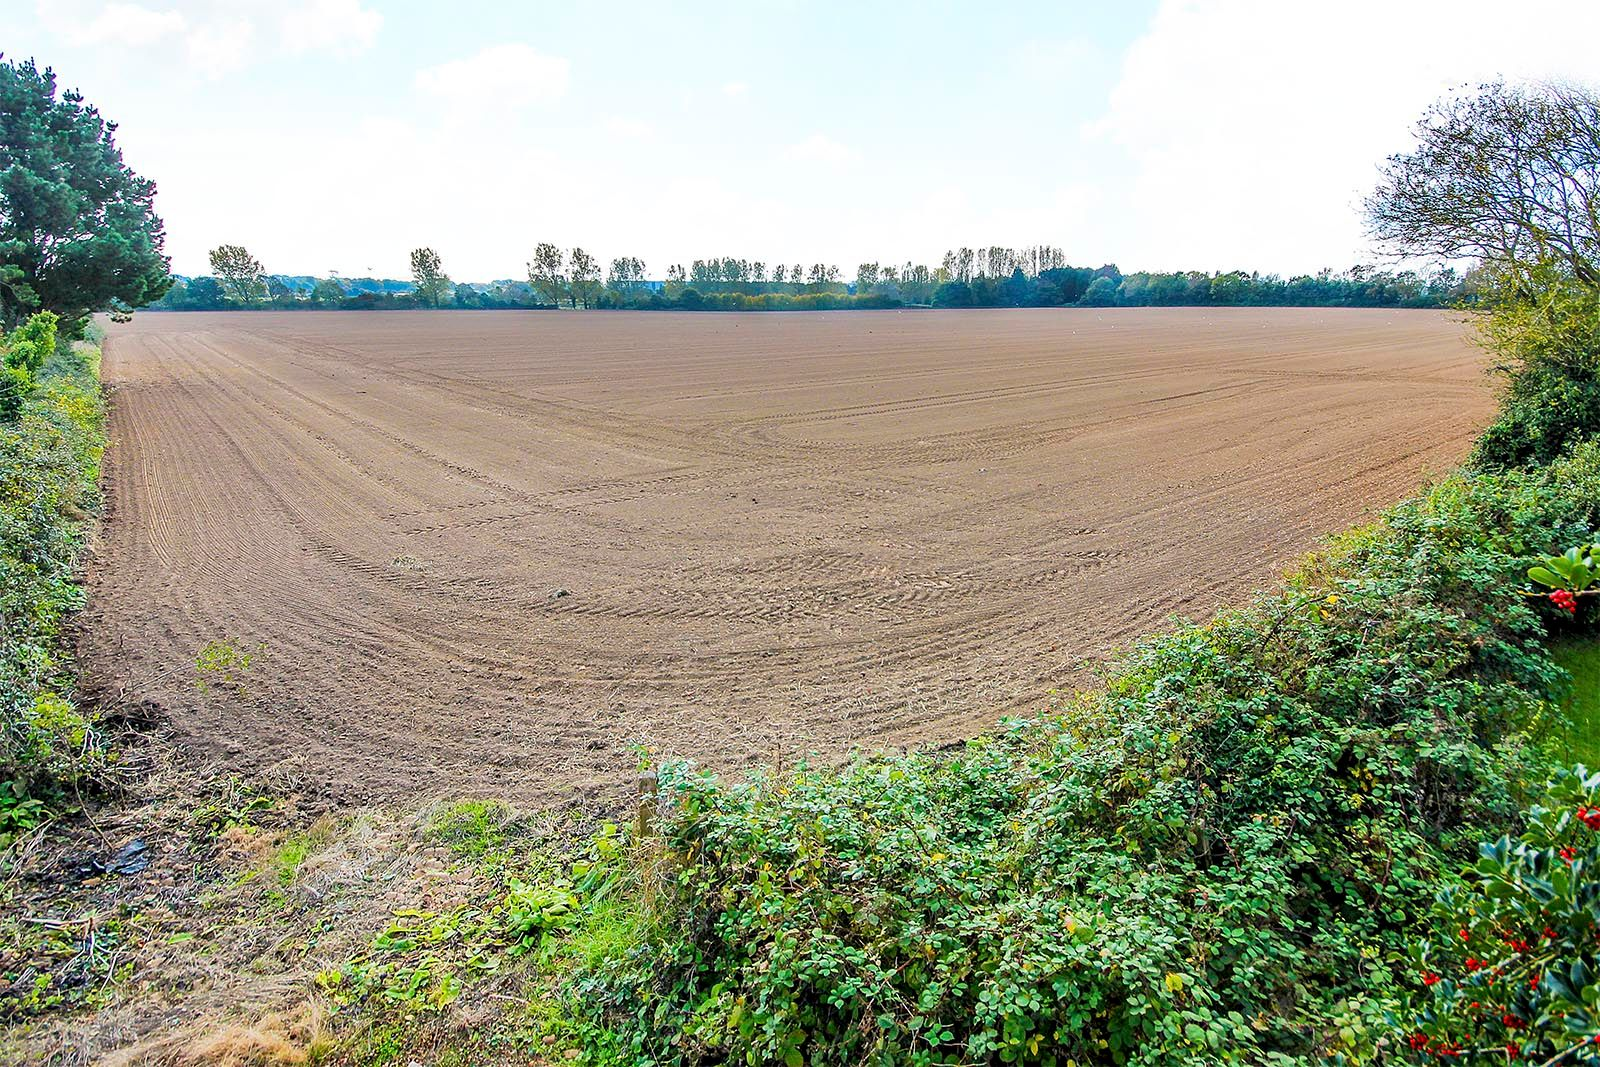 2 bed House for sale in Arundel - Outlook over open fields at the rear (Property Image 16)